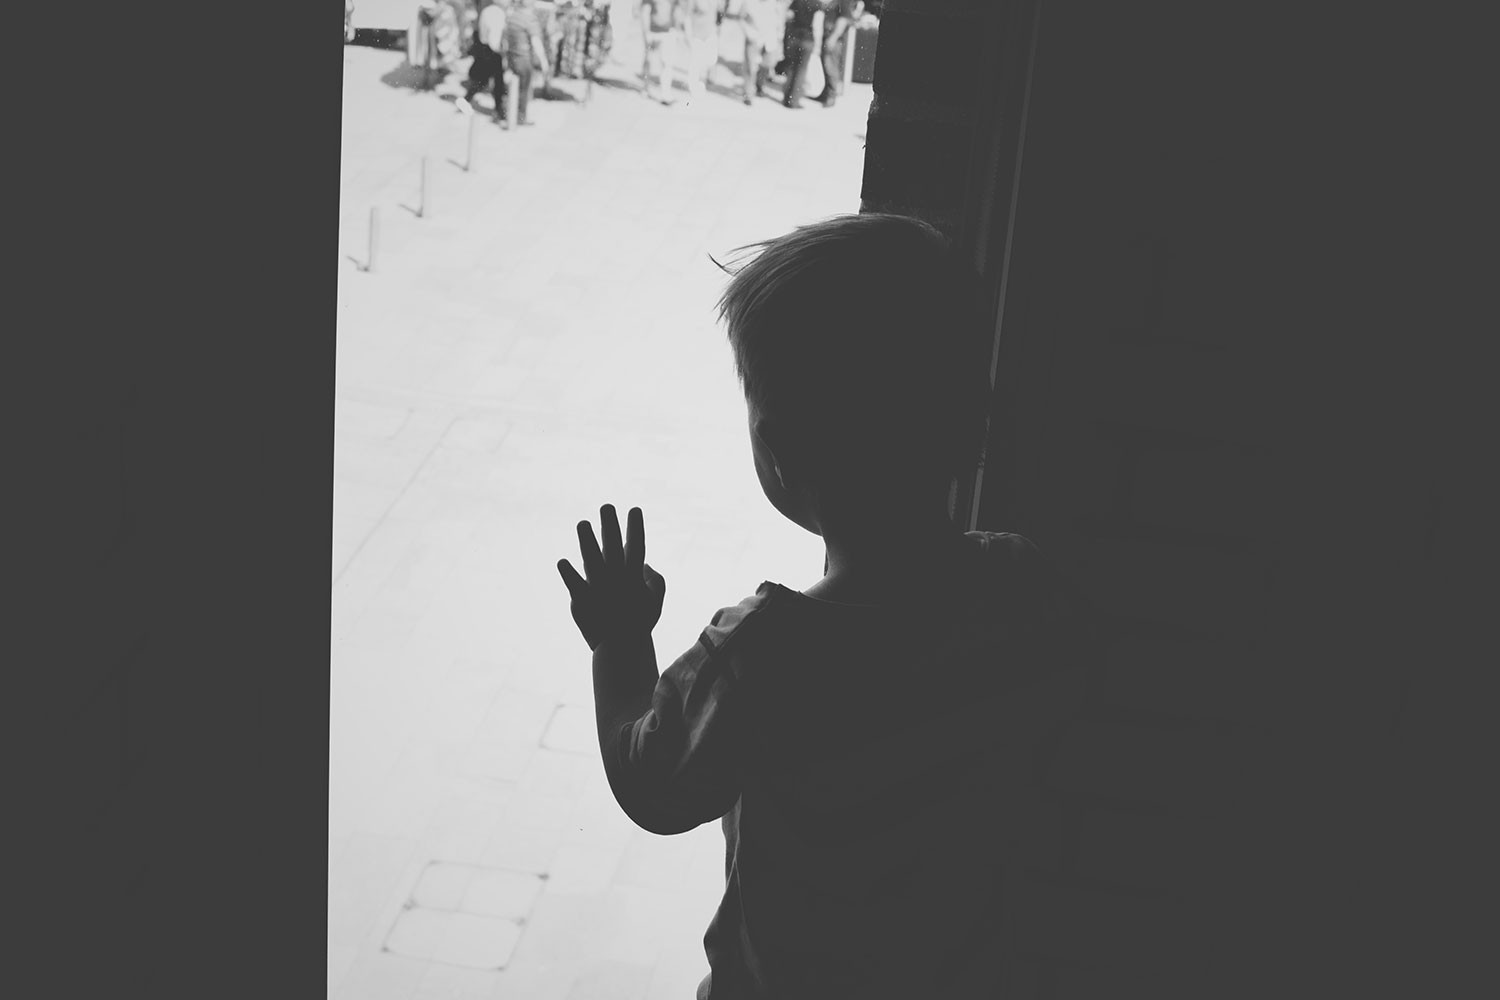 One Beautiful Sweaty Sunday at Stratford-upon-Avon - Toddler looking out of the window from the upper levels at the Royal Shakespeare Company Theatre